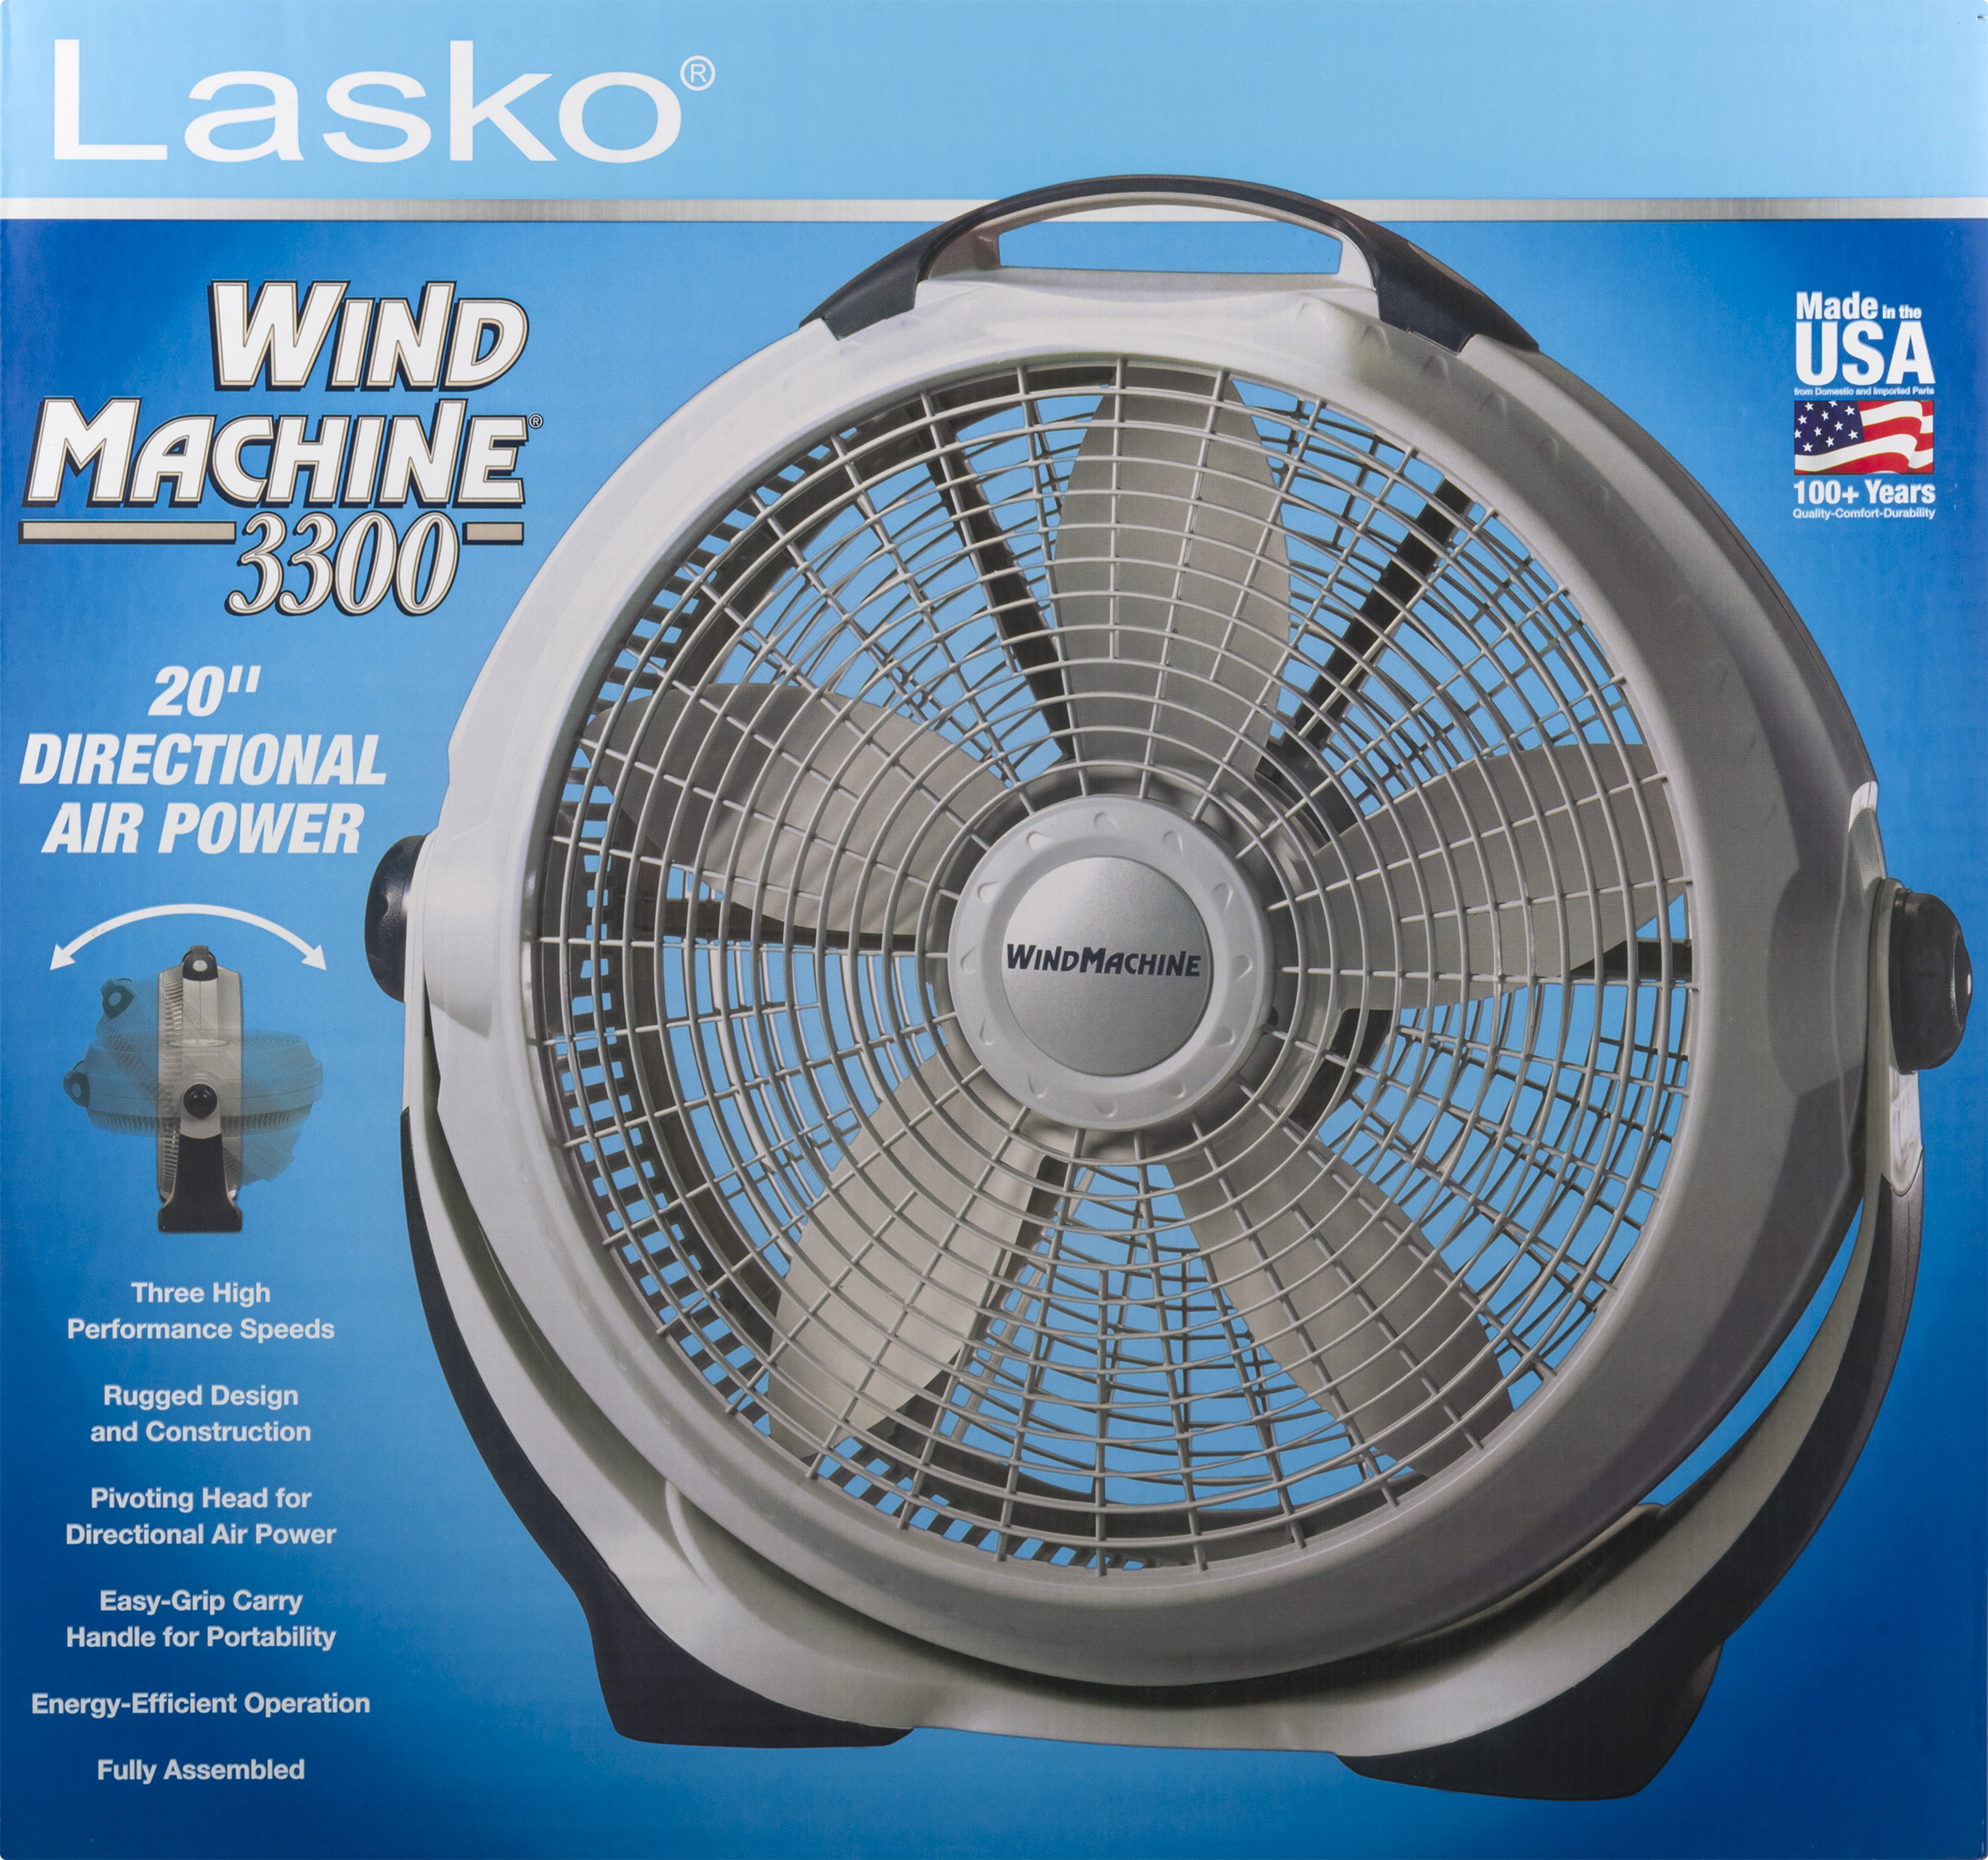 Lasko 20 IN Wind Machine, 1.0 CT Image 4 of 8